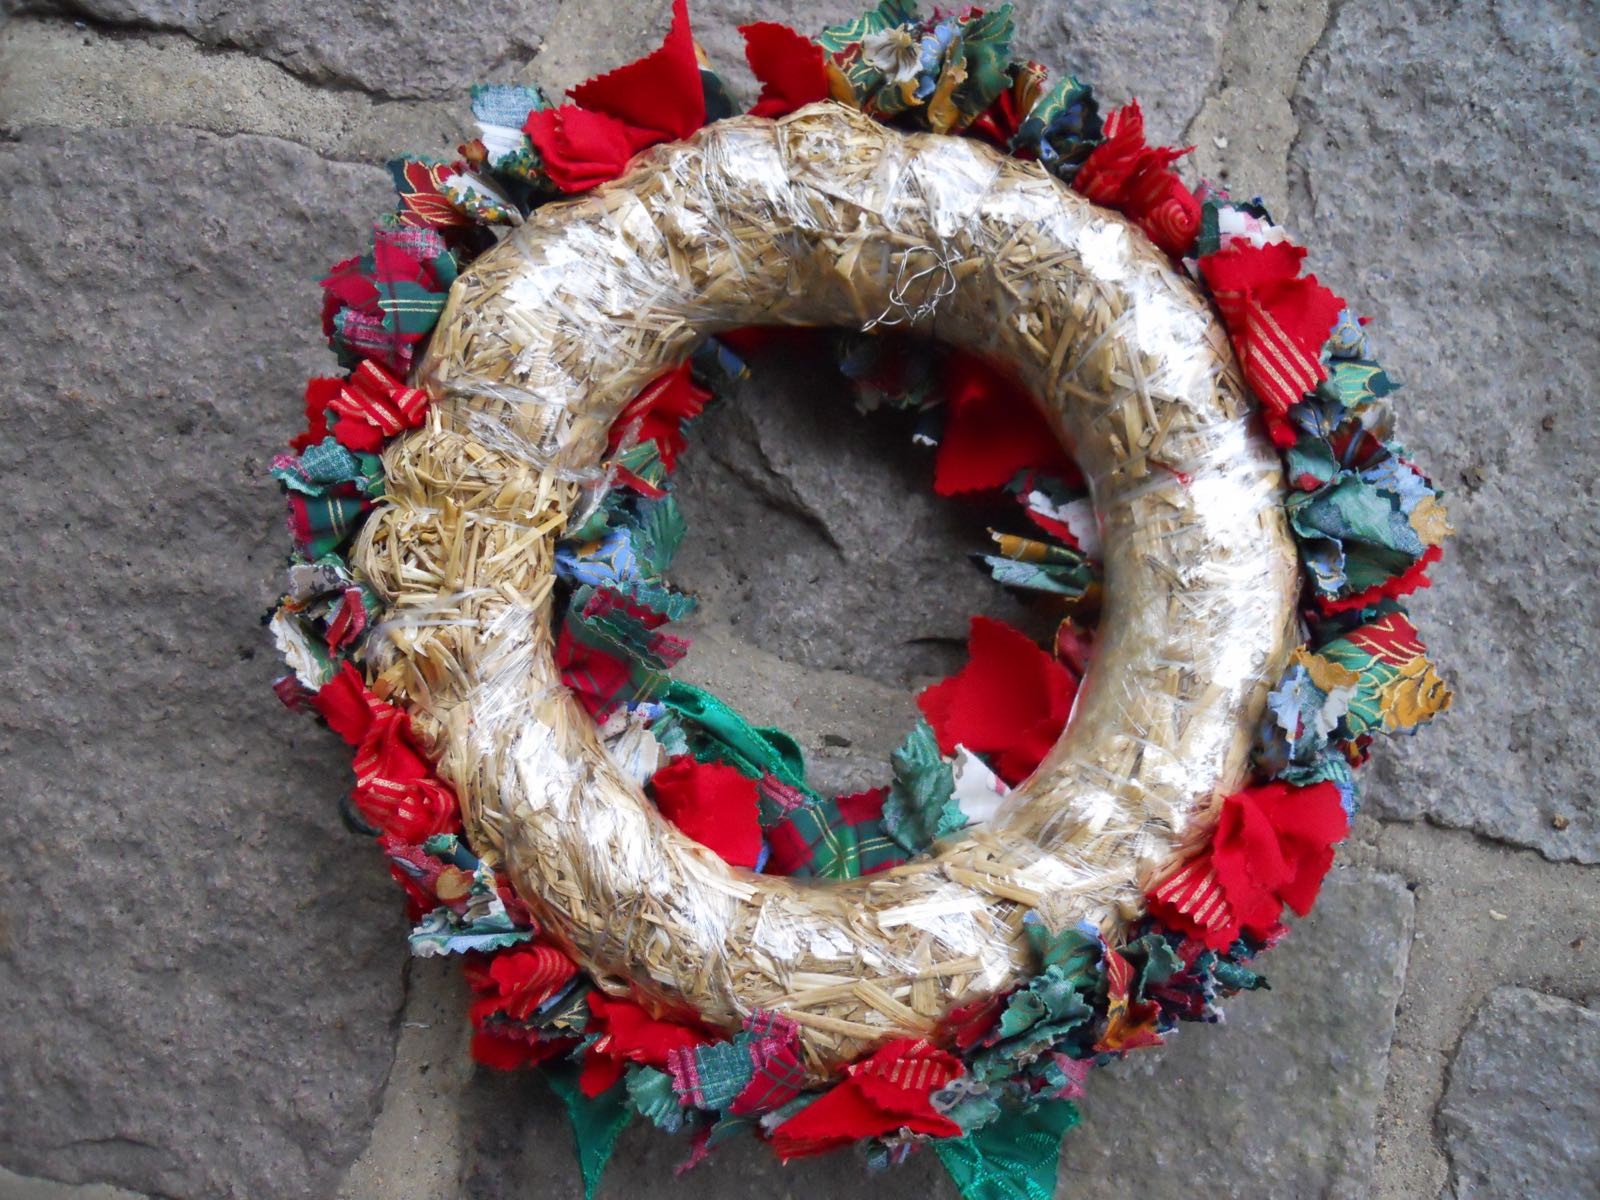 These wreaths are available at most craft stores and big box stores with craft sections.